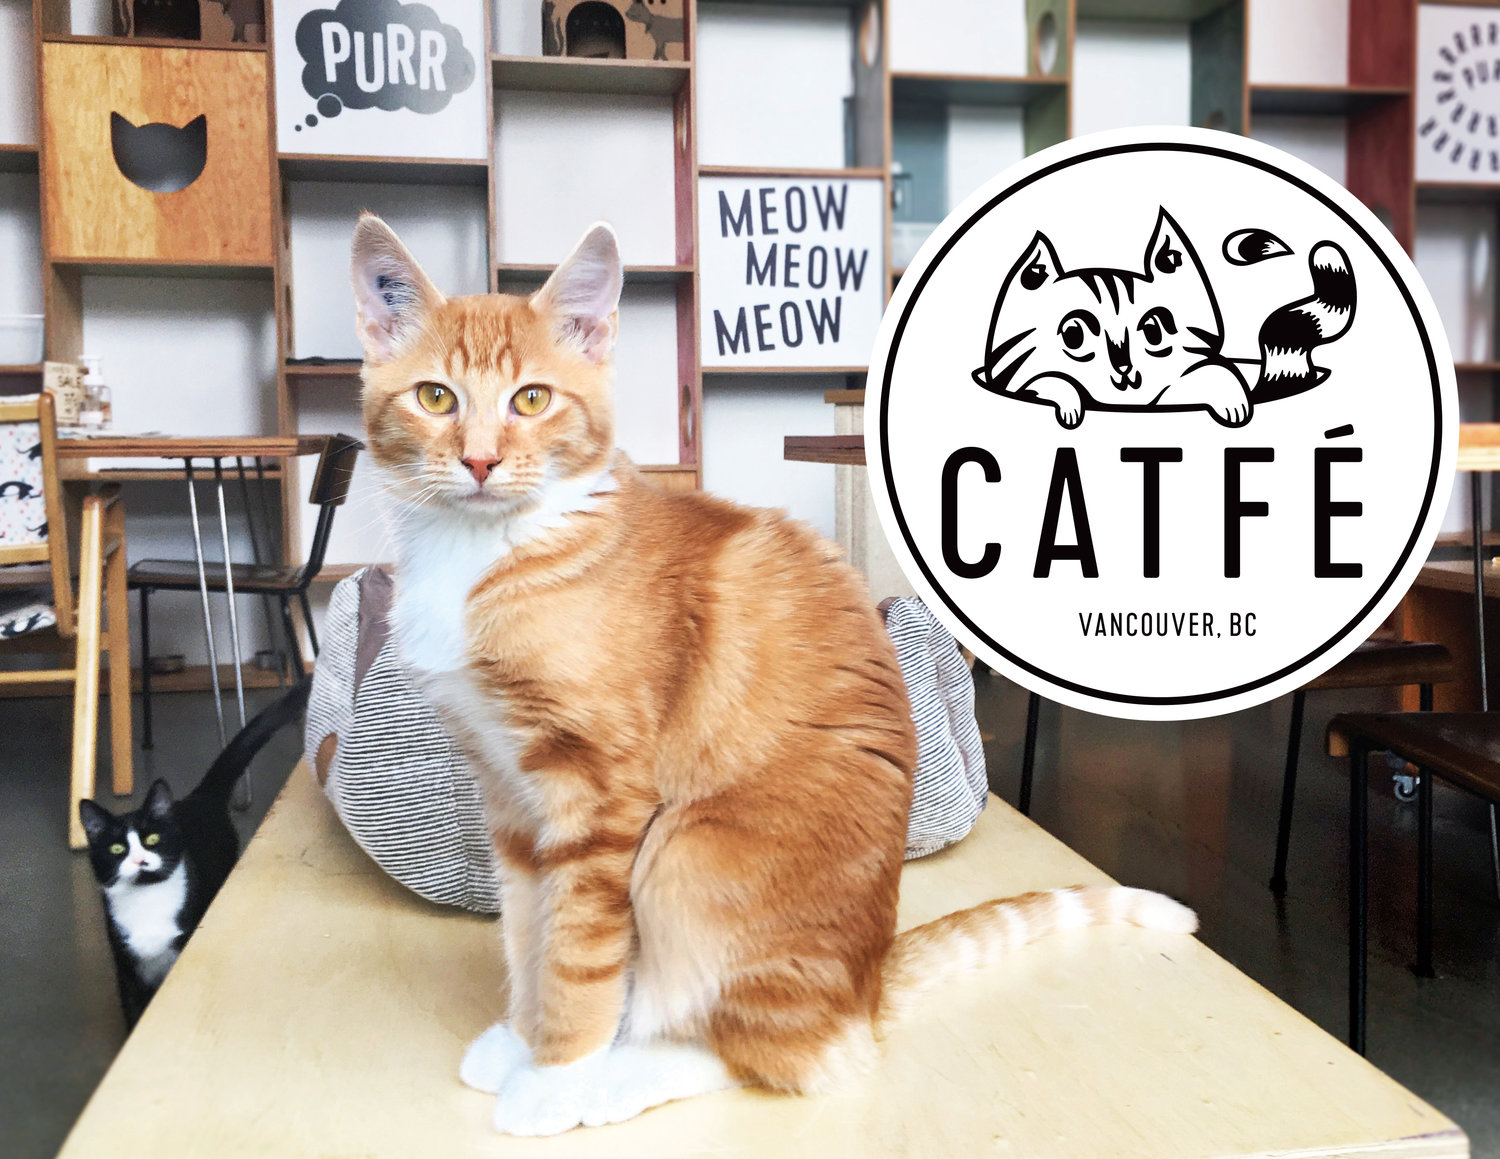 Speed dating cat cafe